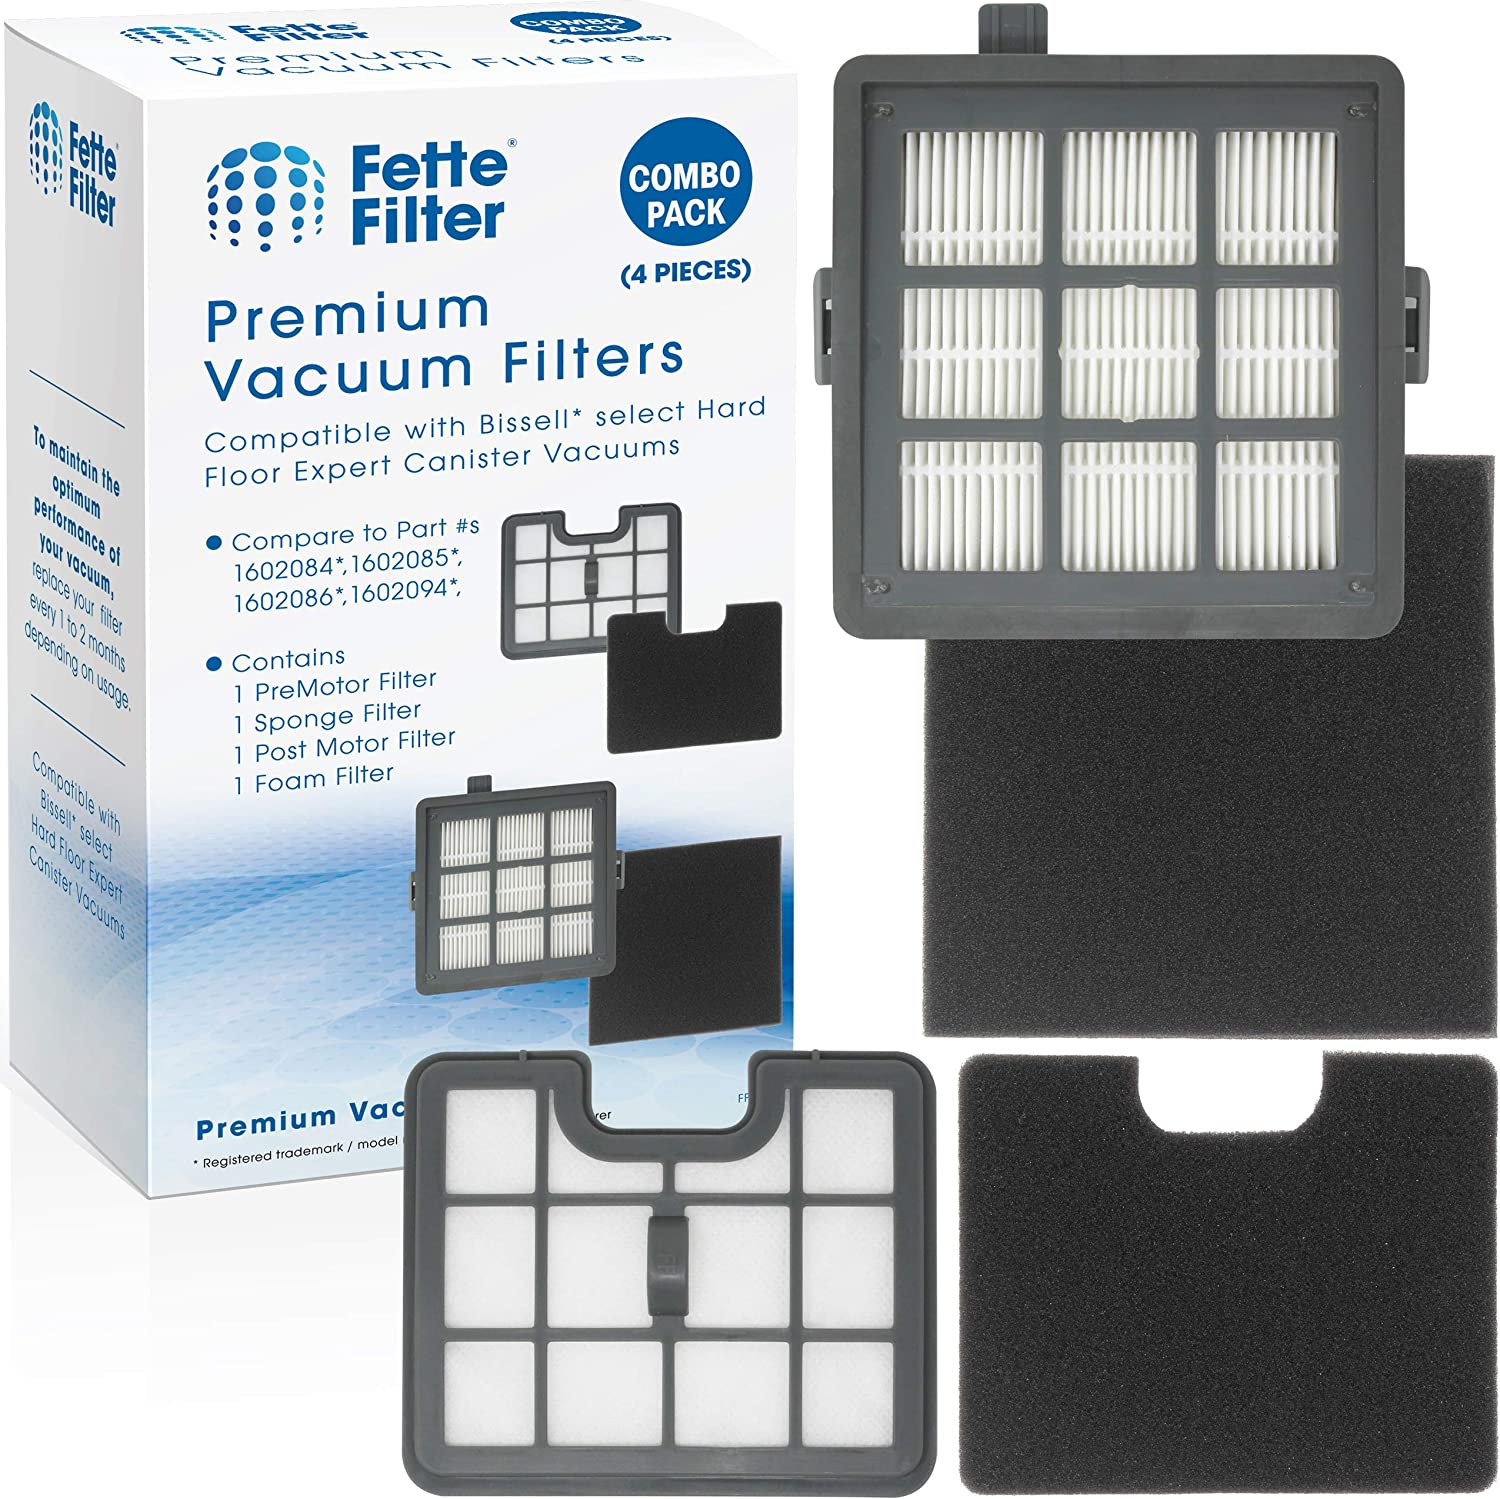 Fette Filter - Filter Set Compatible with Bissell Hard Floor Expert Canister Vacuum Series 1154 & 1161 Contains- 1 PreMotor 1 Sponge 1 Post Motor 1 Foam Part #s 1602084, 1602085, 1602086, 1602094.